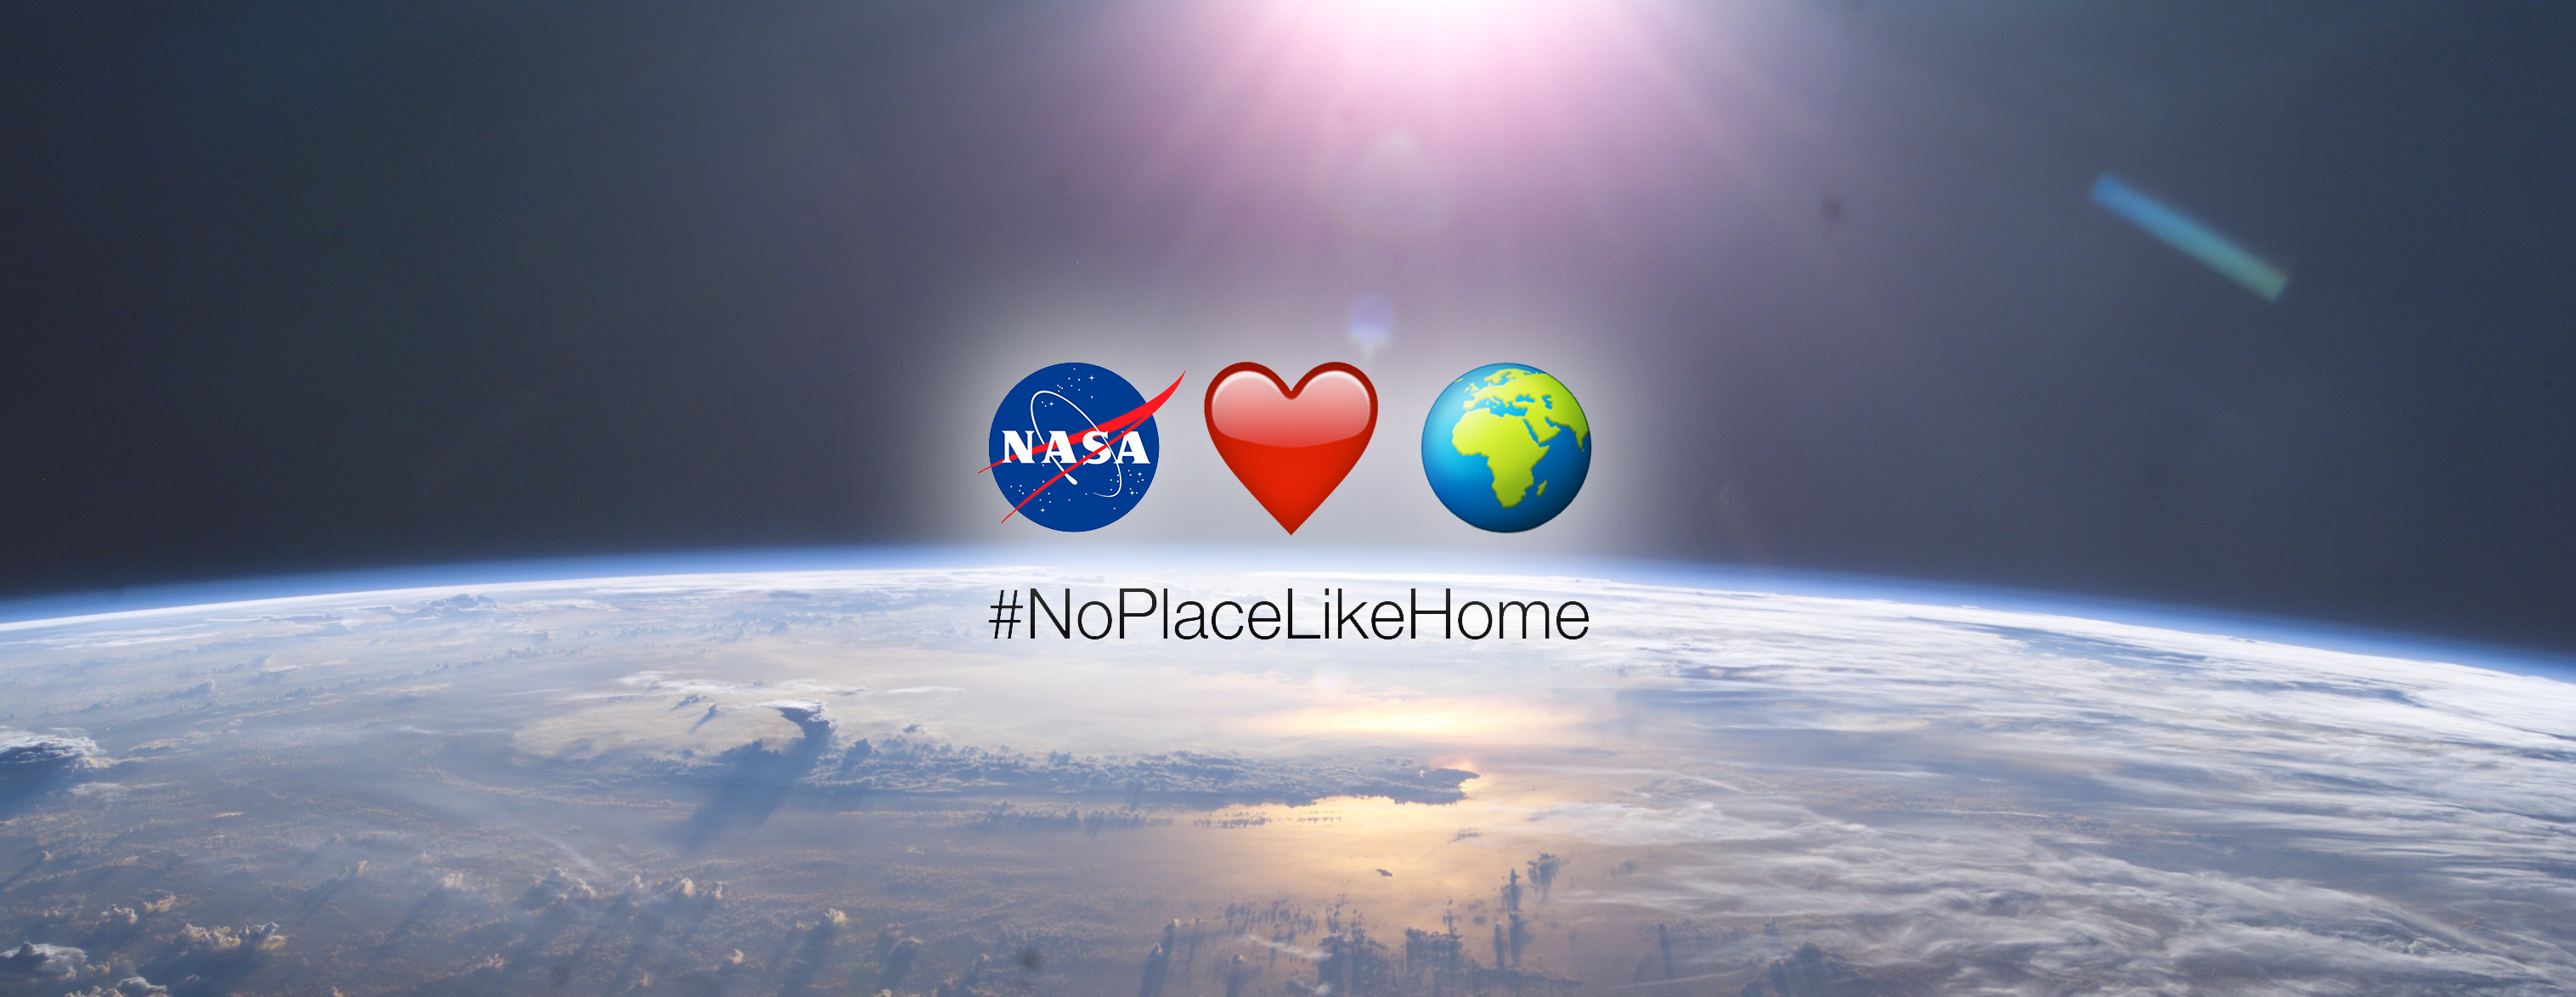 #noplacelikehome Emojis Superimposed Over An Earth Photograph From The Iss